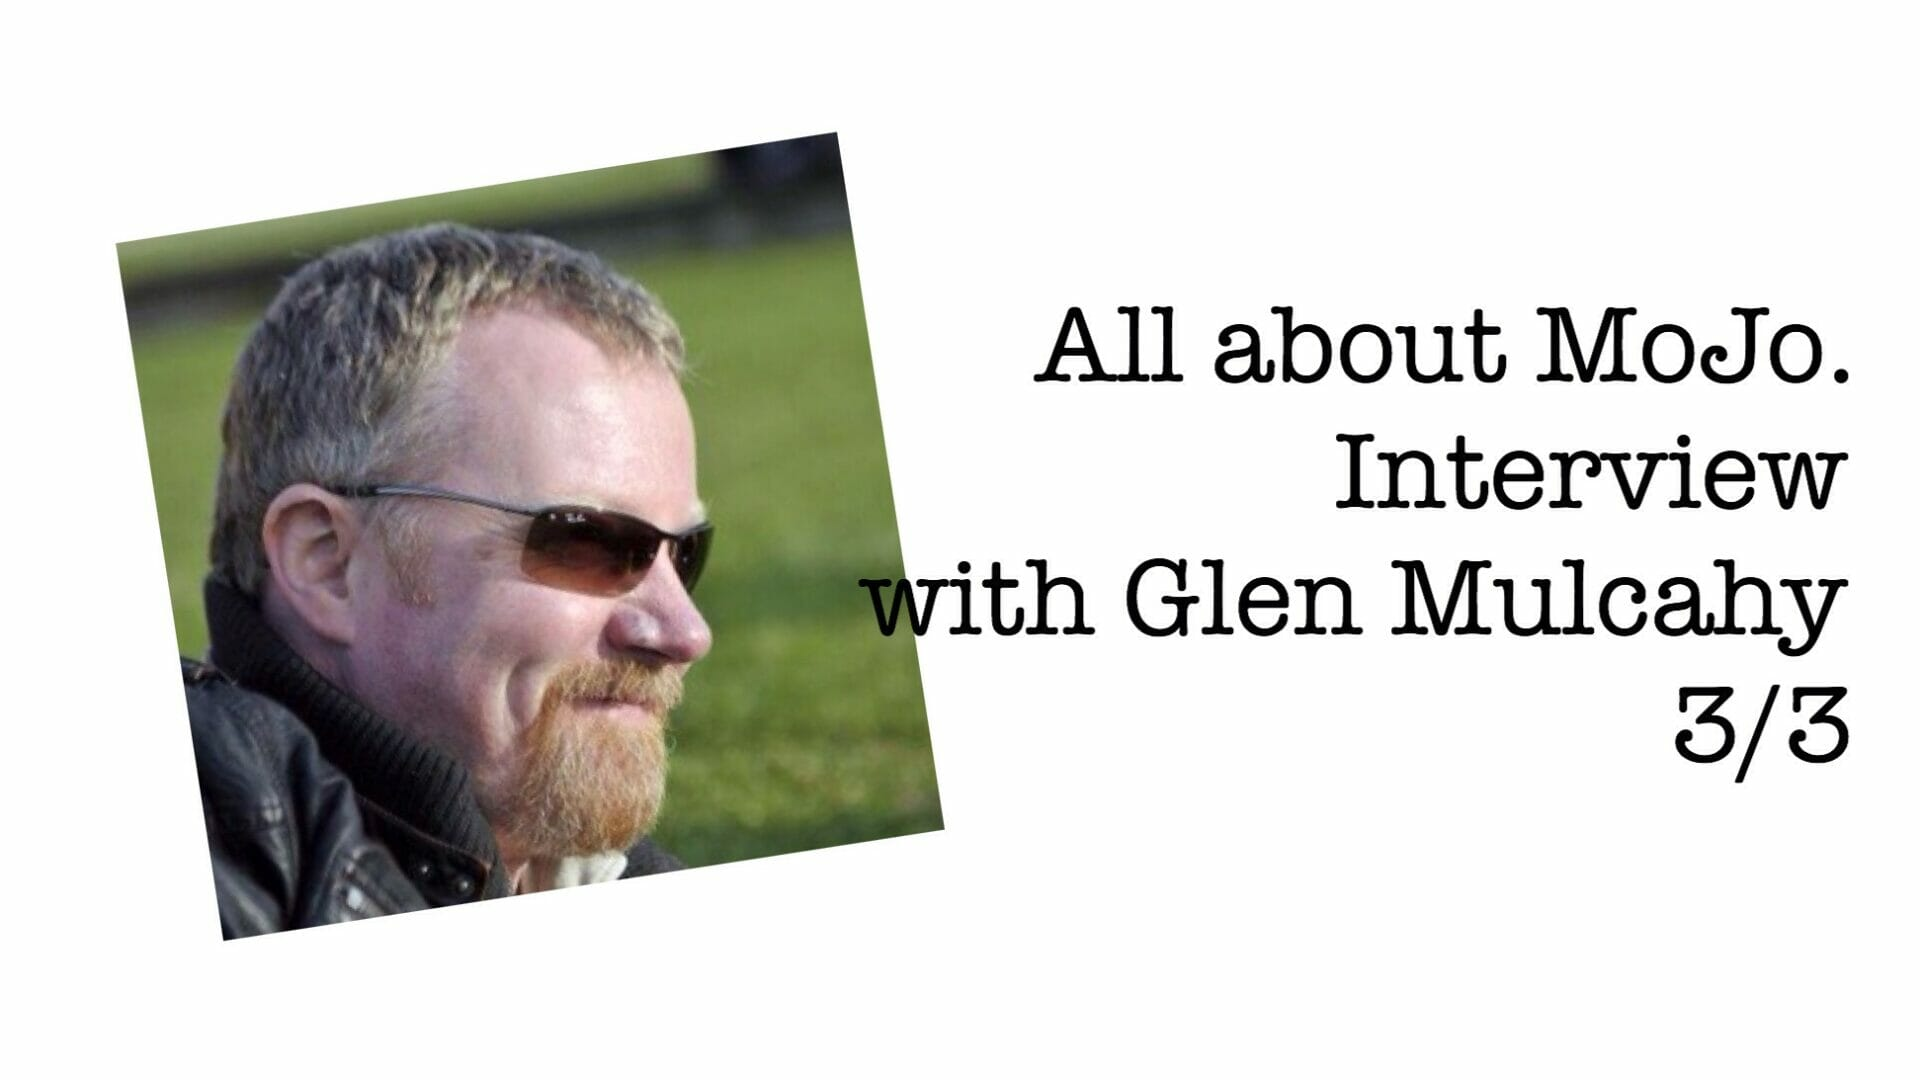 All about MoJo. Interview with Glen Mulcahy 3/3